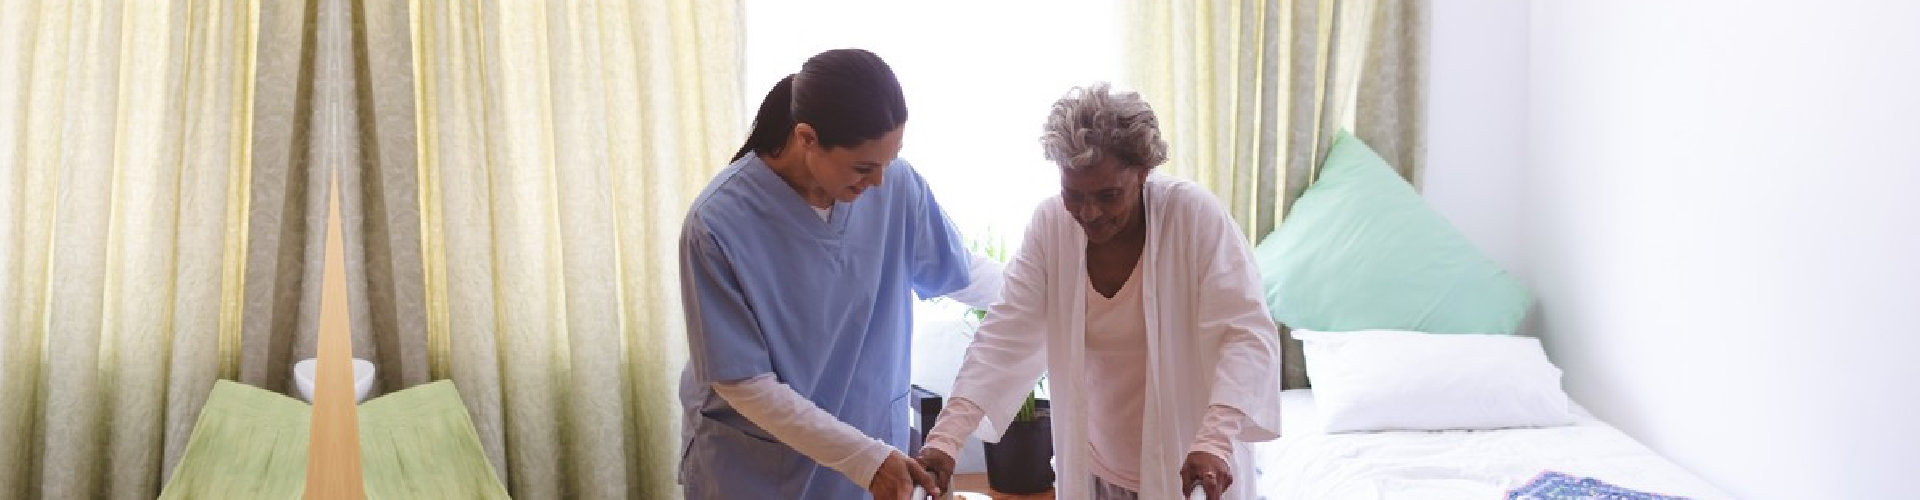 caregiver assisting elder woman in using a walker